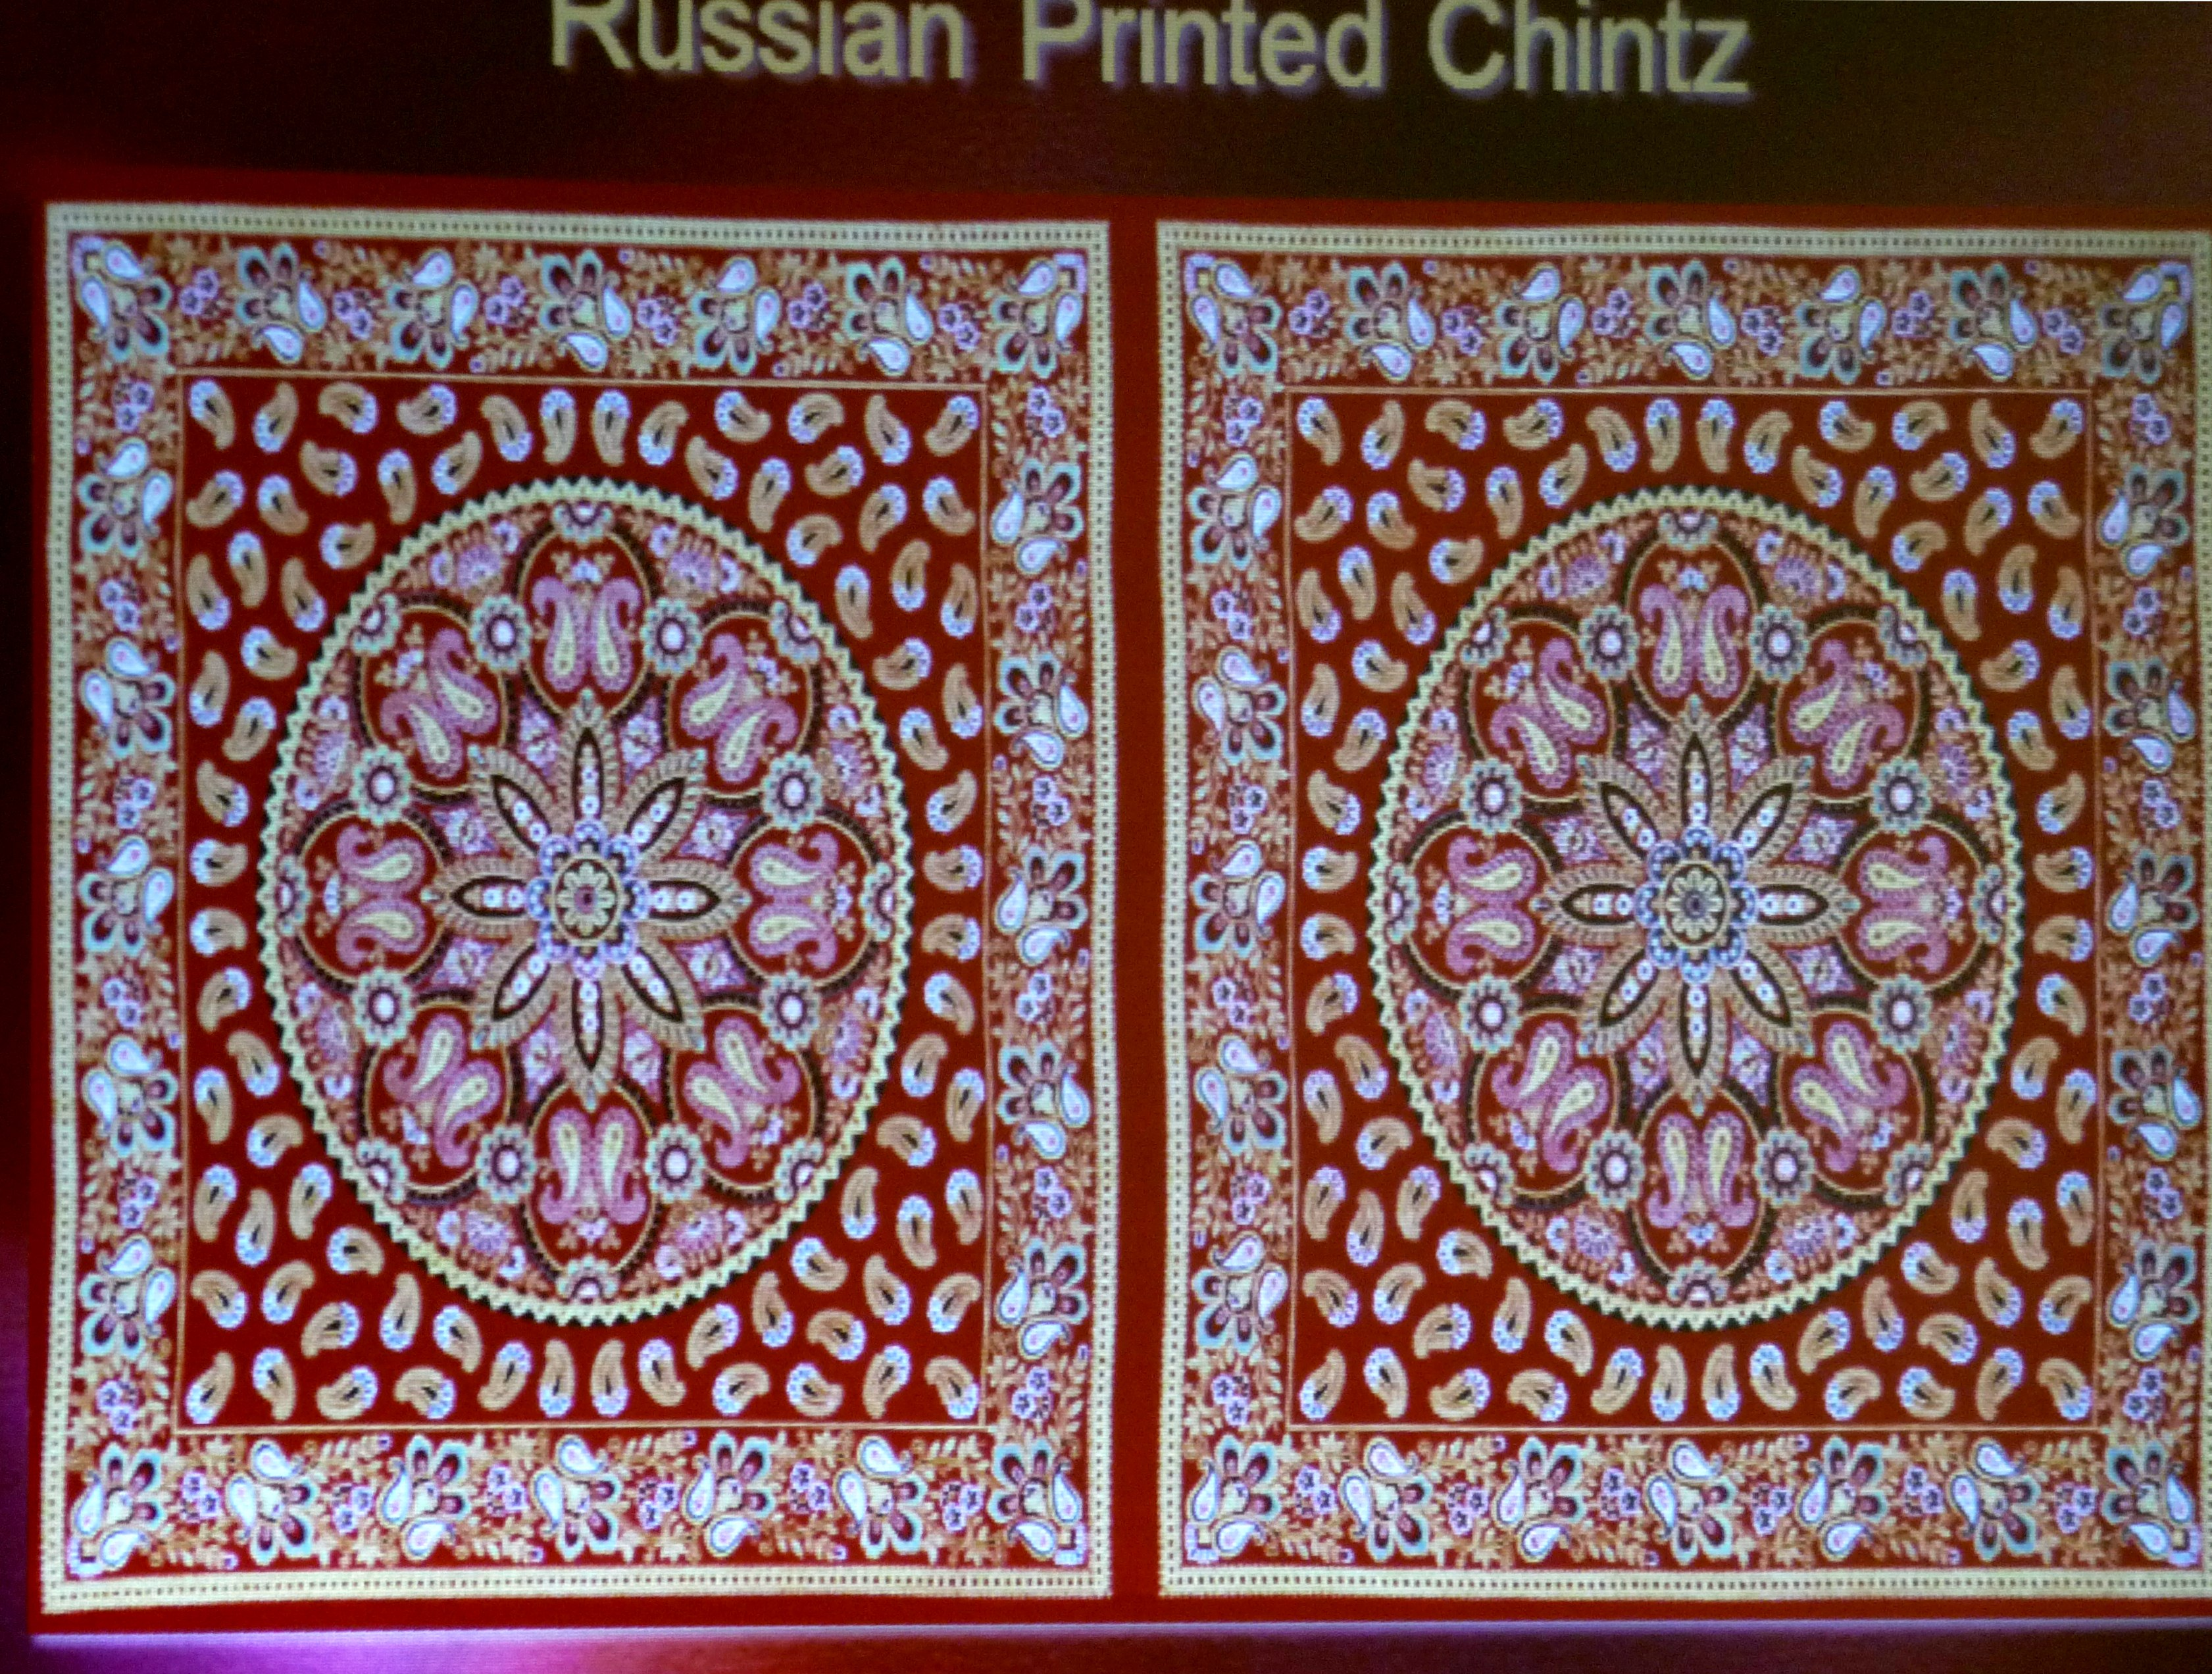 Qaraqalpaq people purchased Russian chintz to line their embroidered headdresses